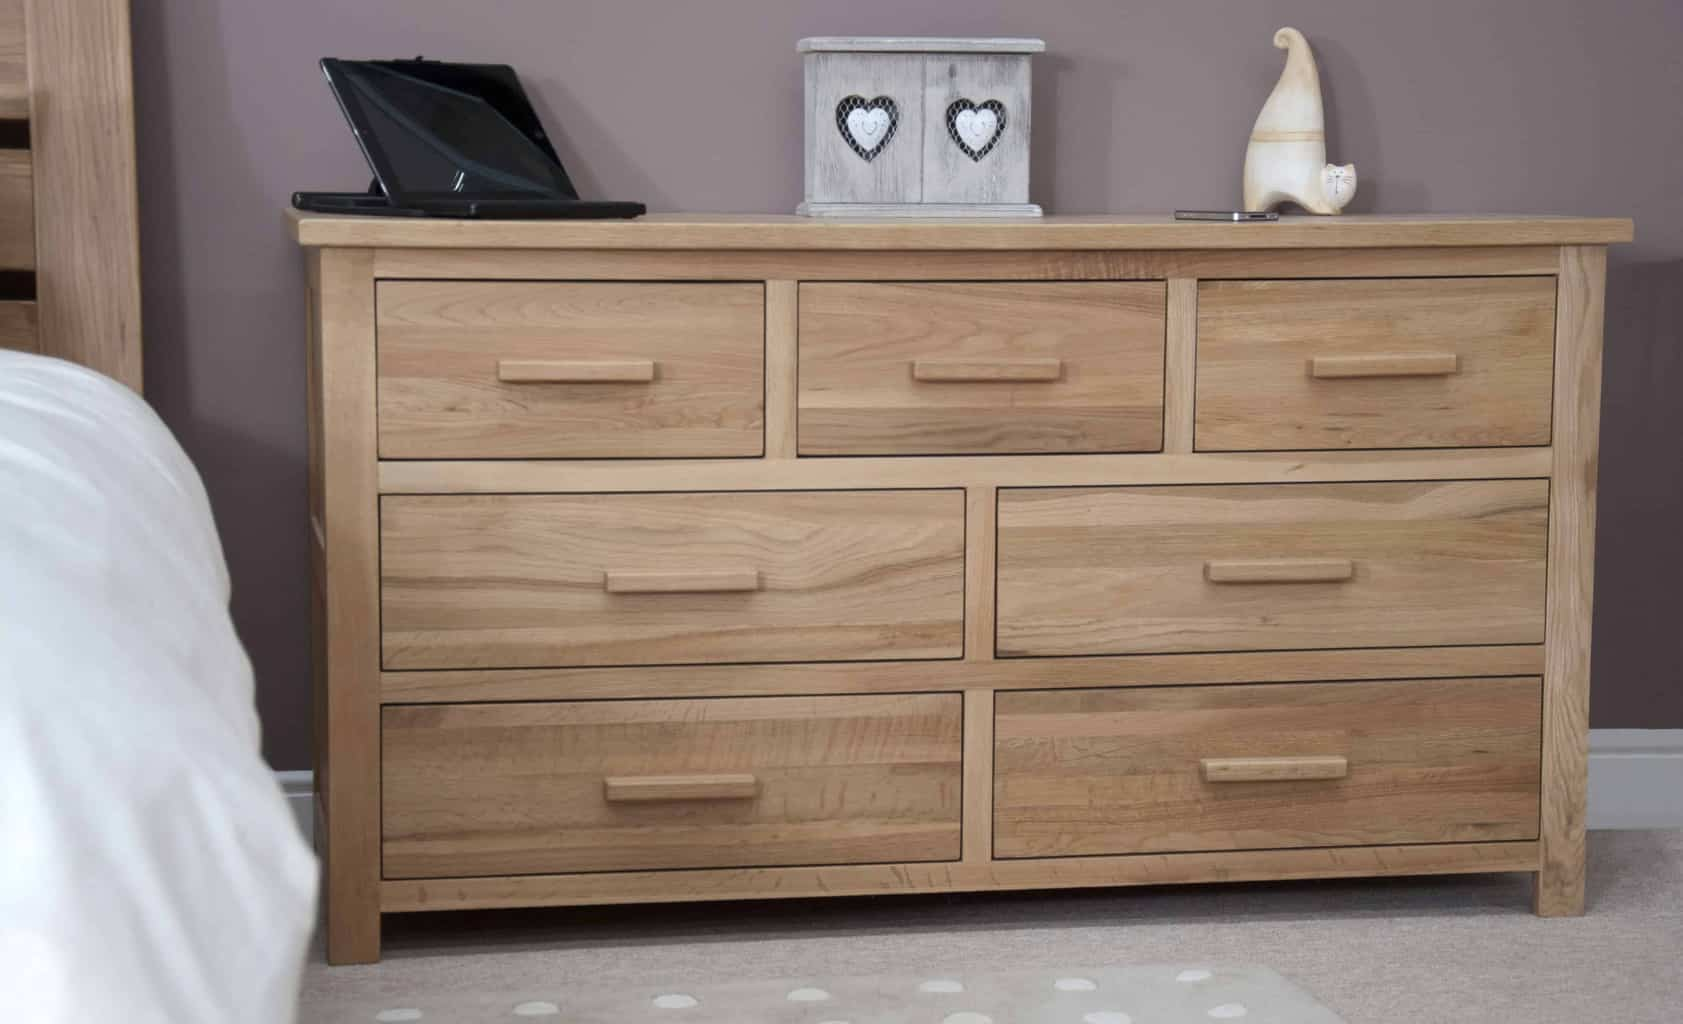 Opus contemporary oak 3 over 4 wide chest of drawers msl - Contemporary bedroom chest of drawers ...